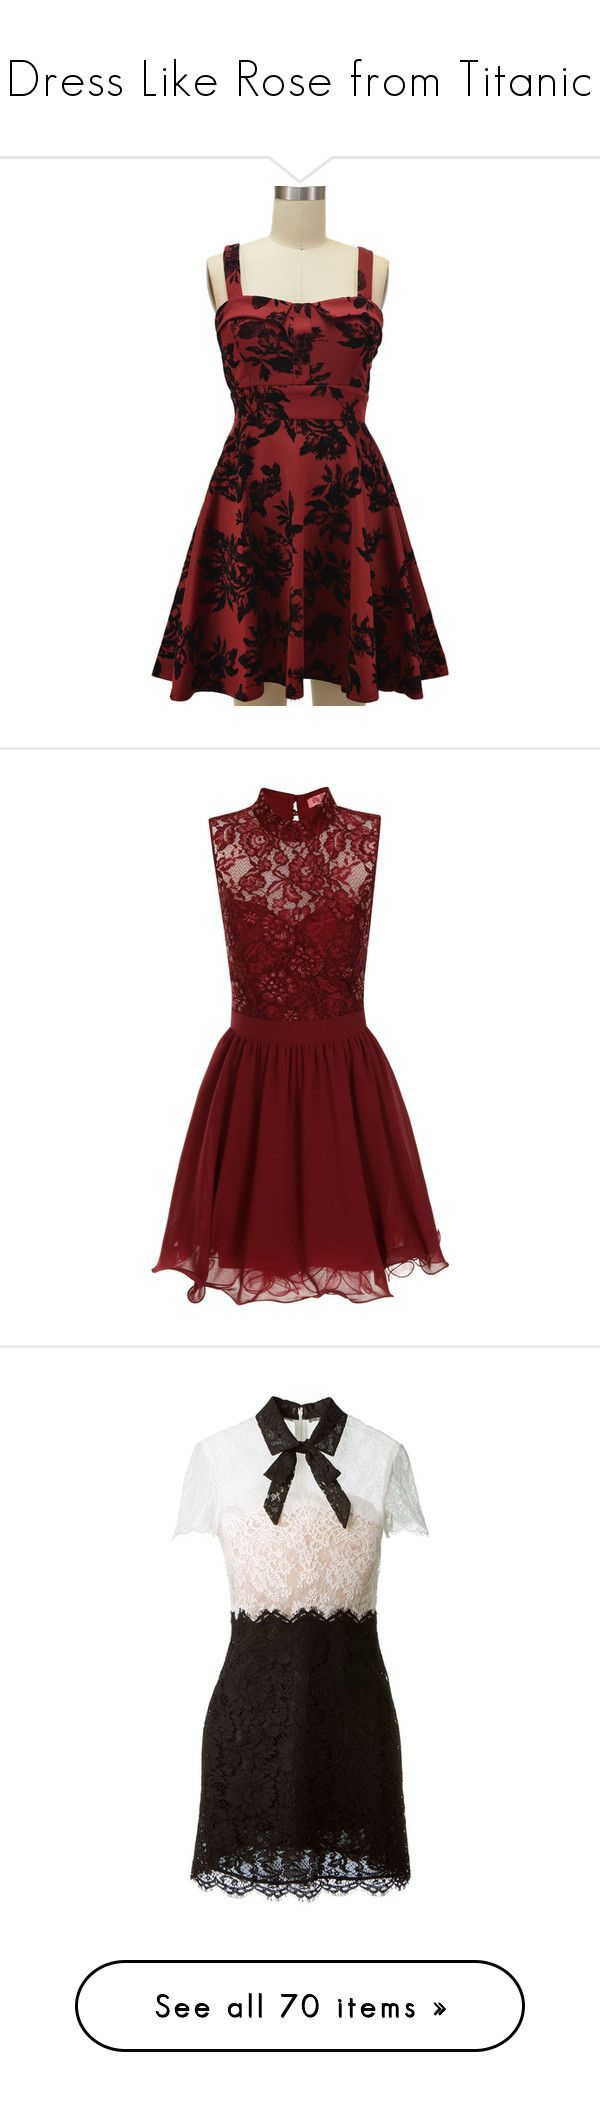 """""""Dress Like Rose from Titanic"""" by sophialovescoffee ❤ liked on Polyvore featuring dresses, red, vestidos, red dress, red strap dress, garnet dress, red sweetheart dress, red sweetheart cocktail dress, bow dress and short dresses"""